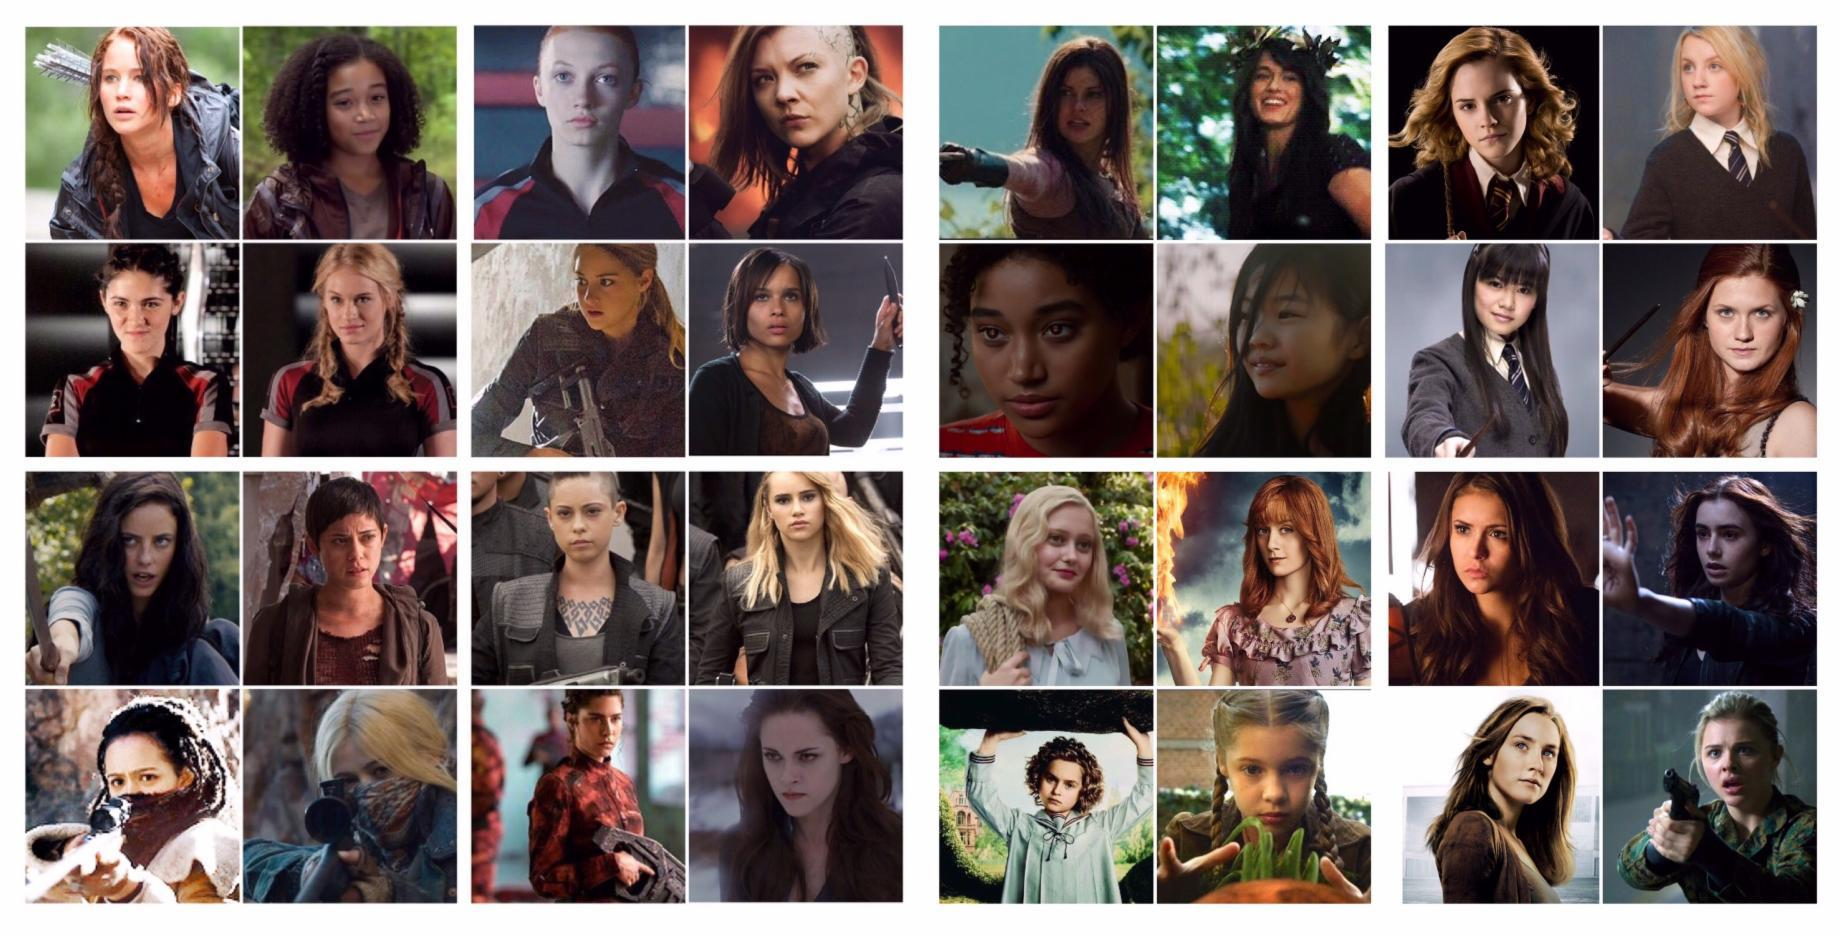 Which of these heroines do you like most?